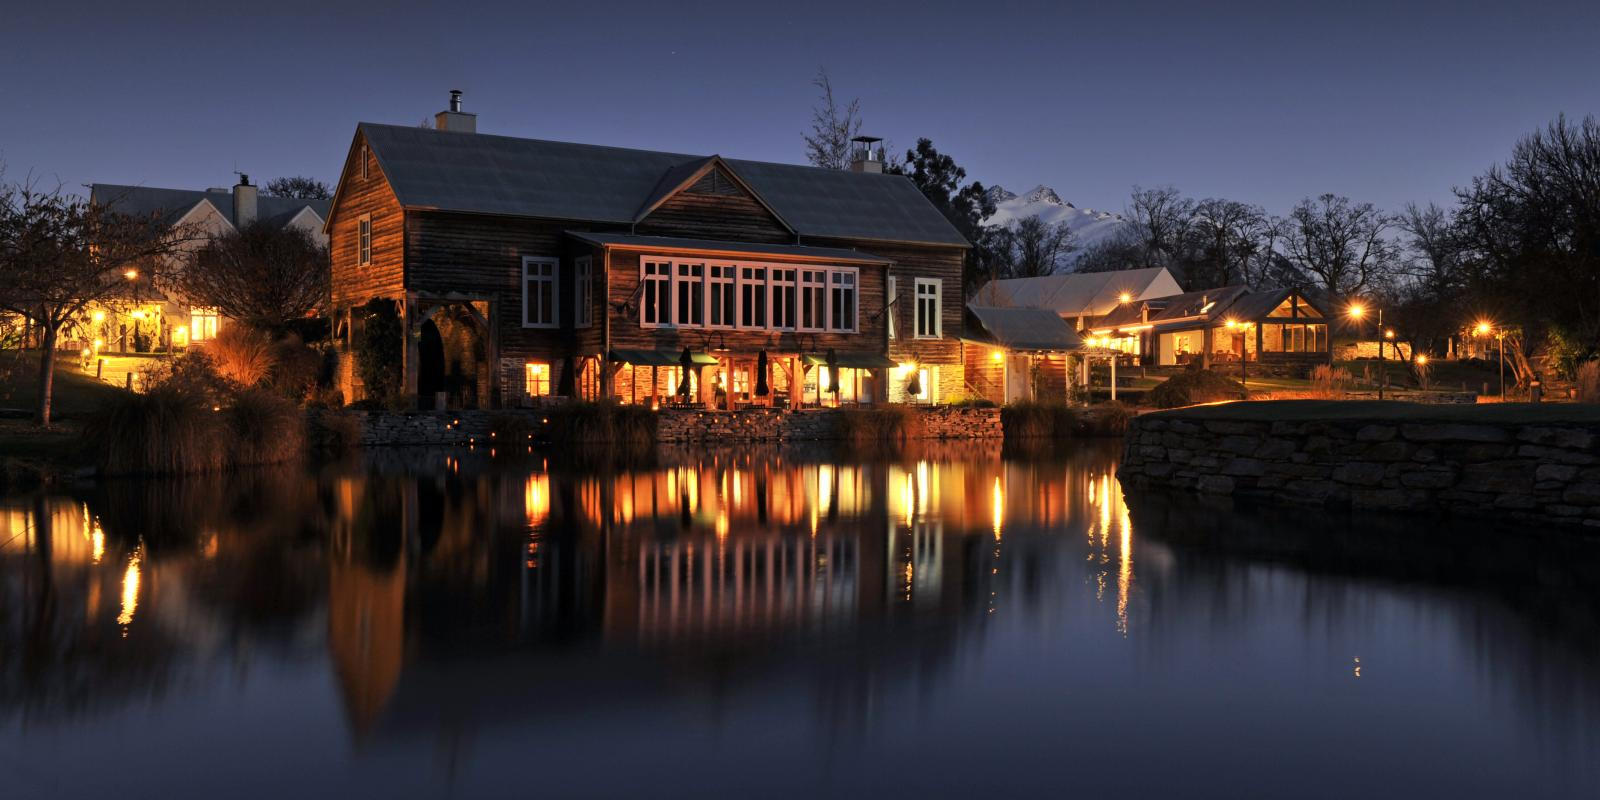 The Millhouse Restaurant at Millbrook lit up at night